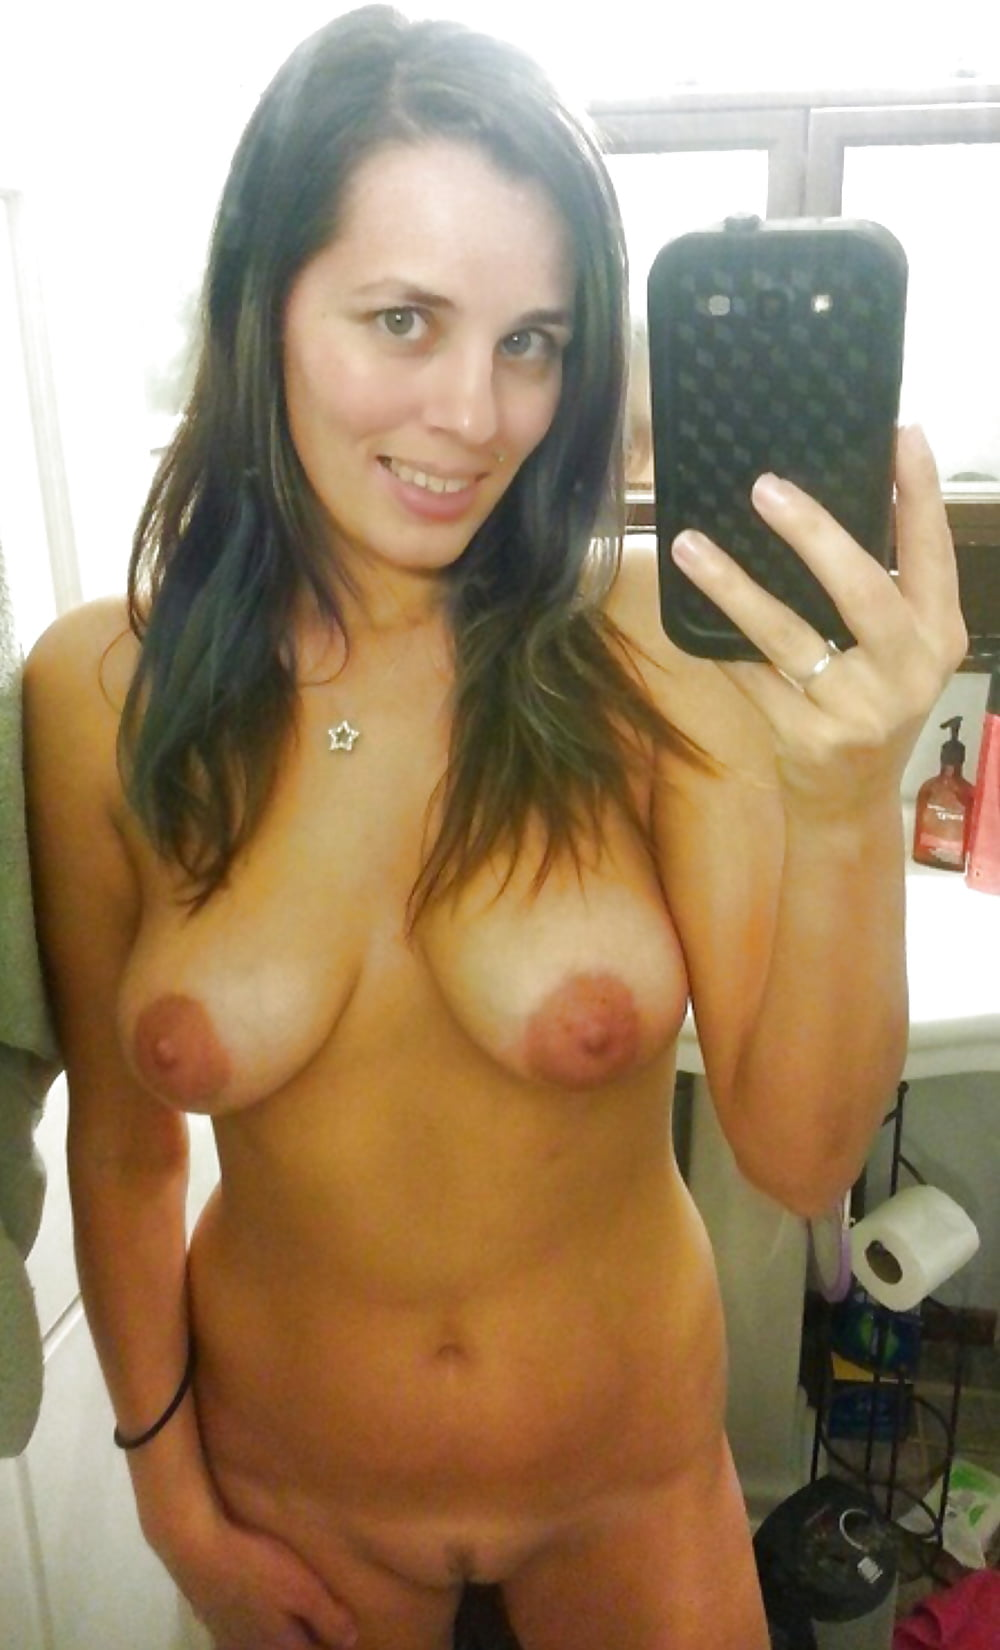 women-at-home-self-shot-nude